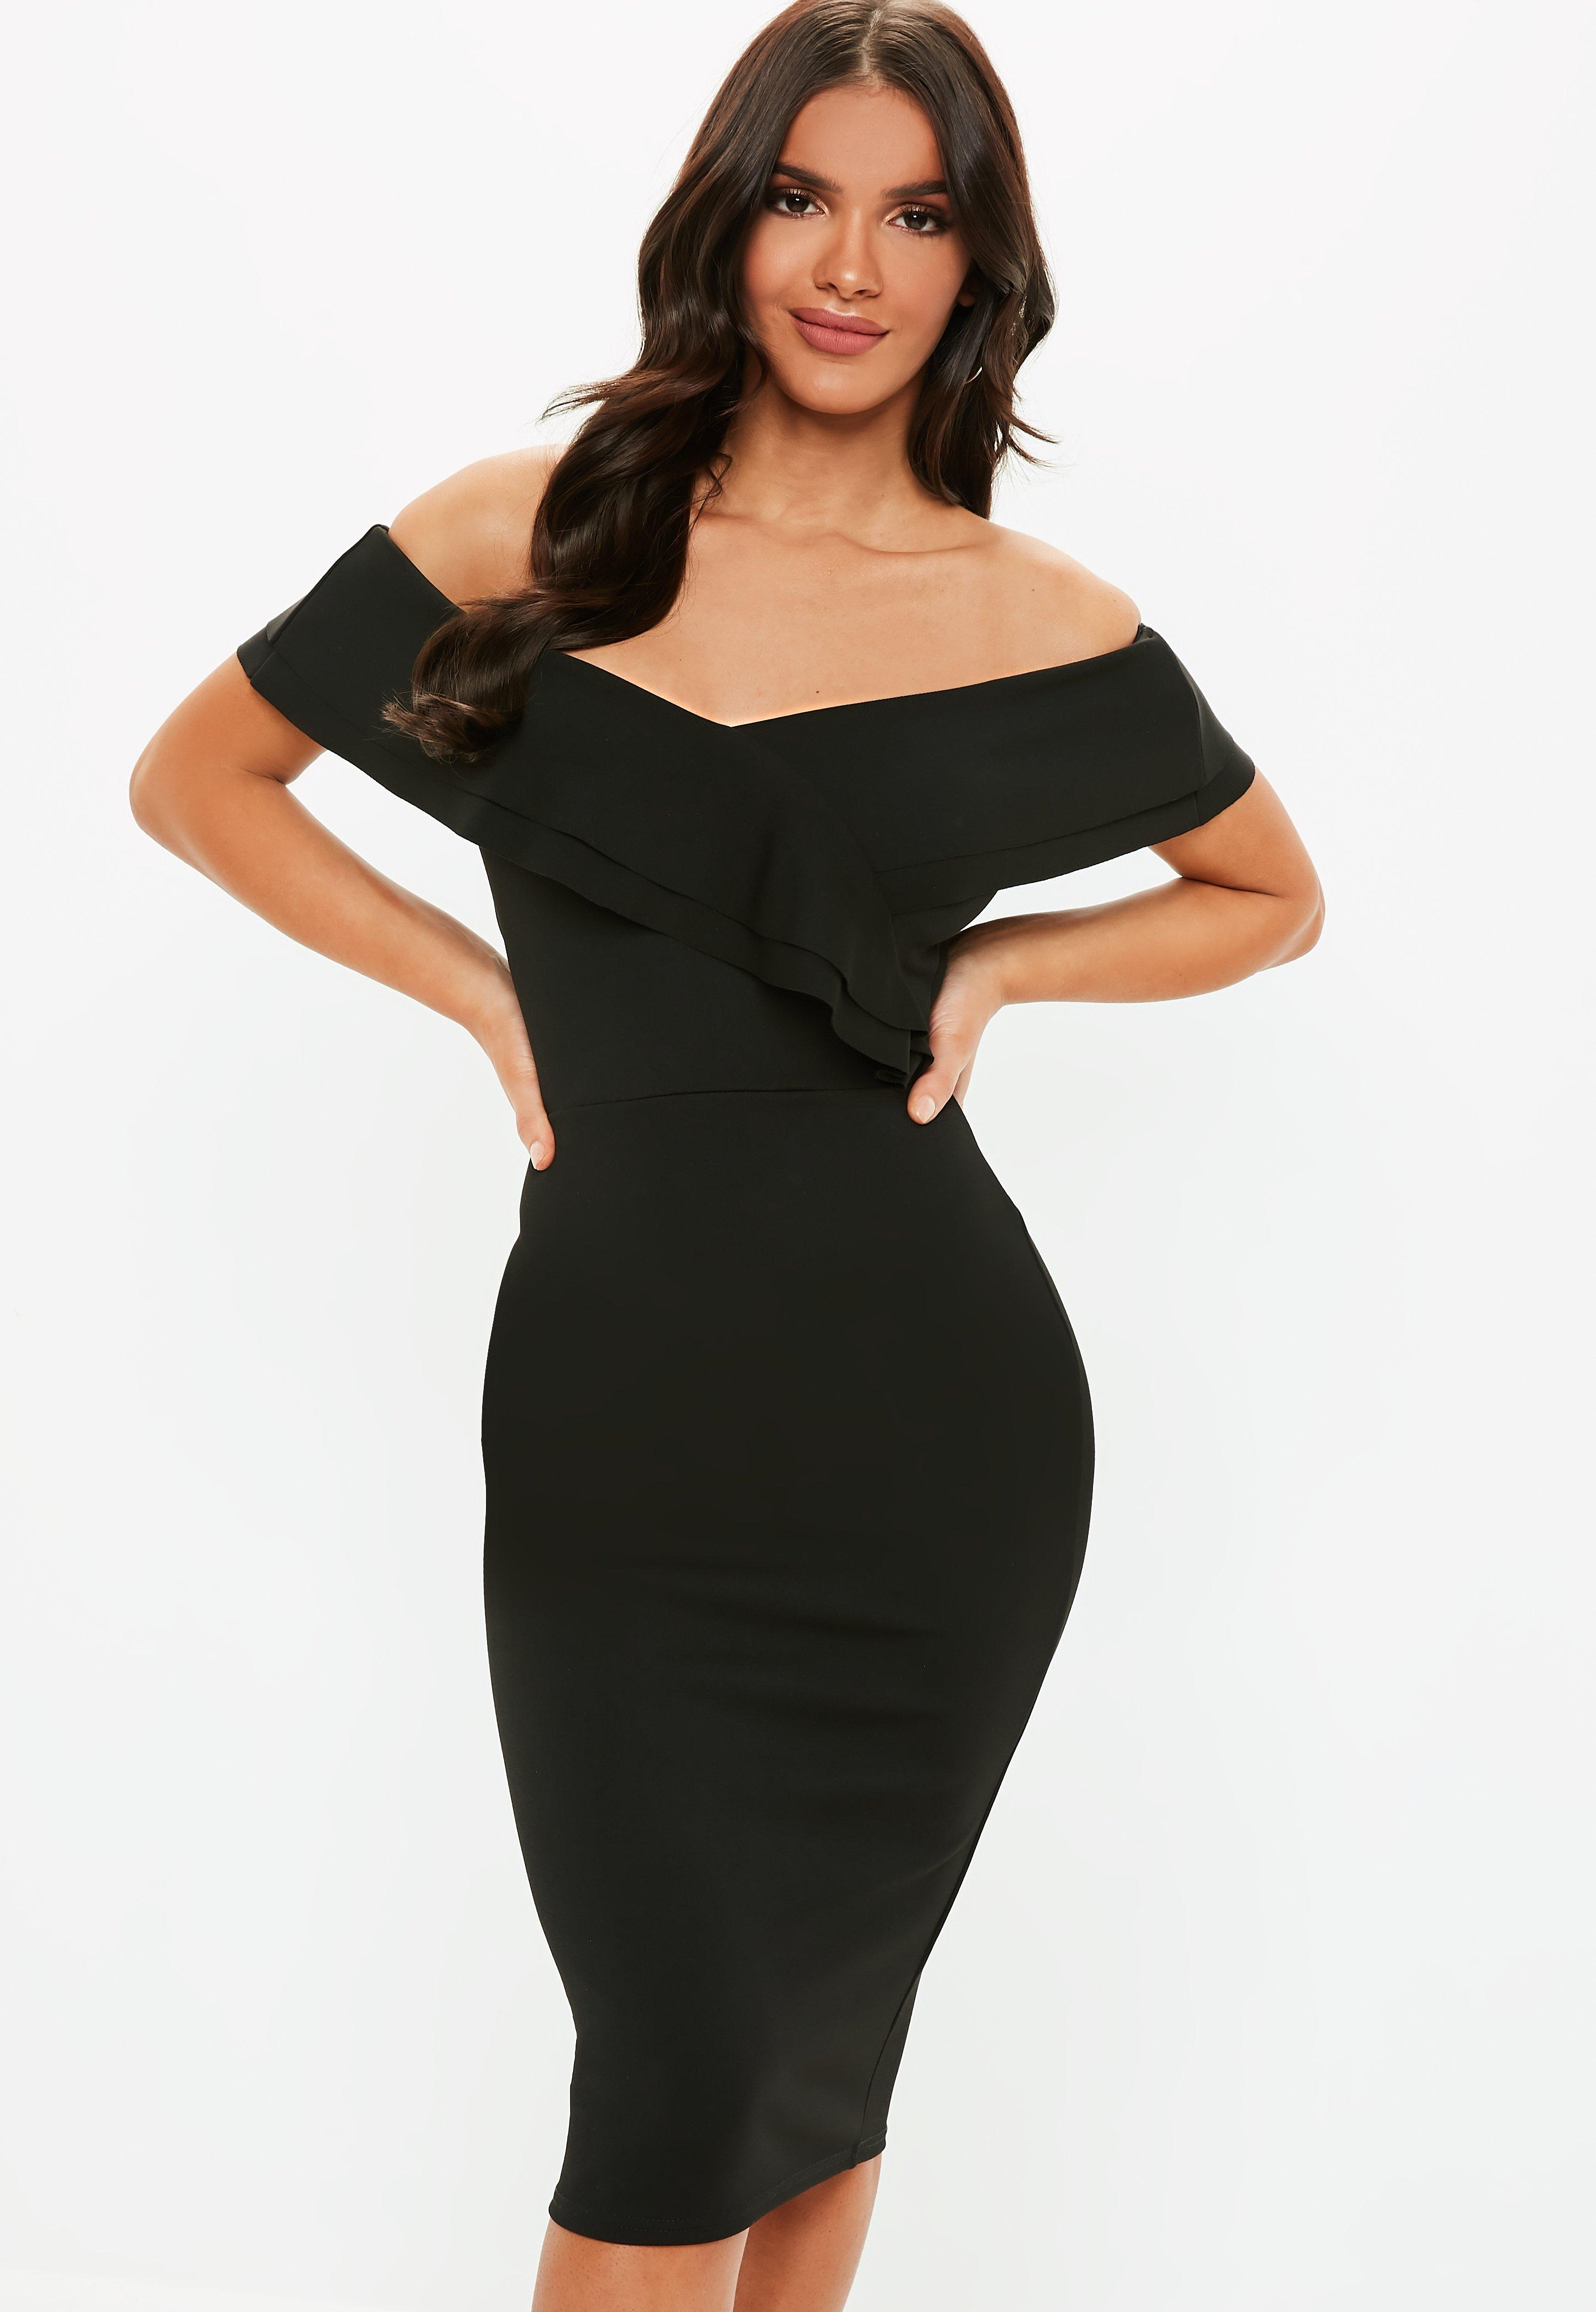 637ec4574e7c8 Robe bustier   Robe bandeau femme - Missguided